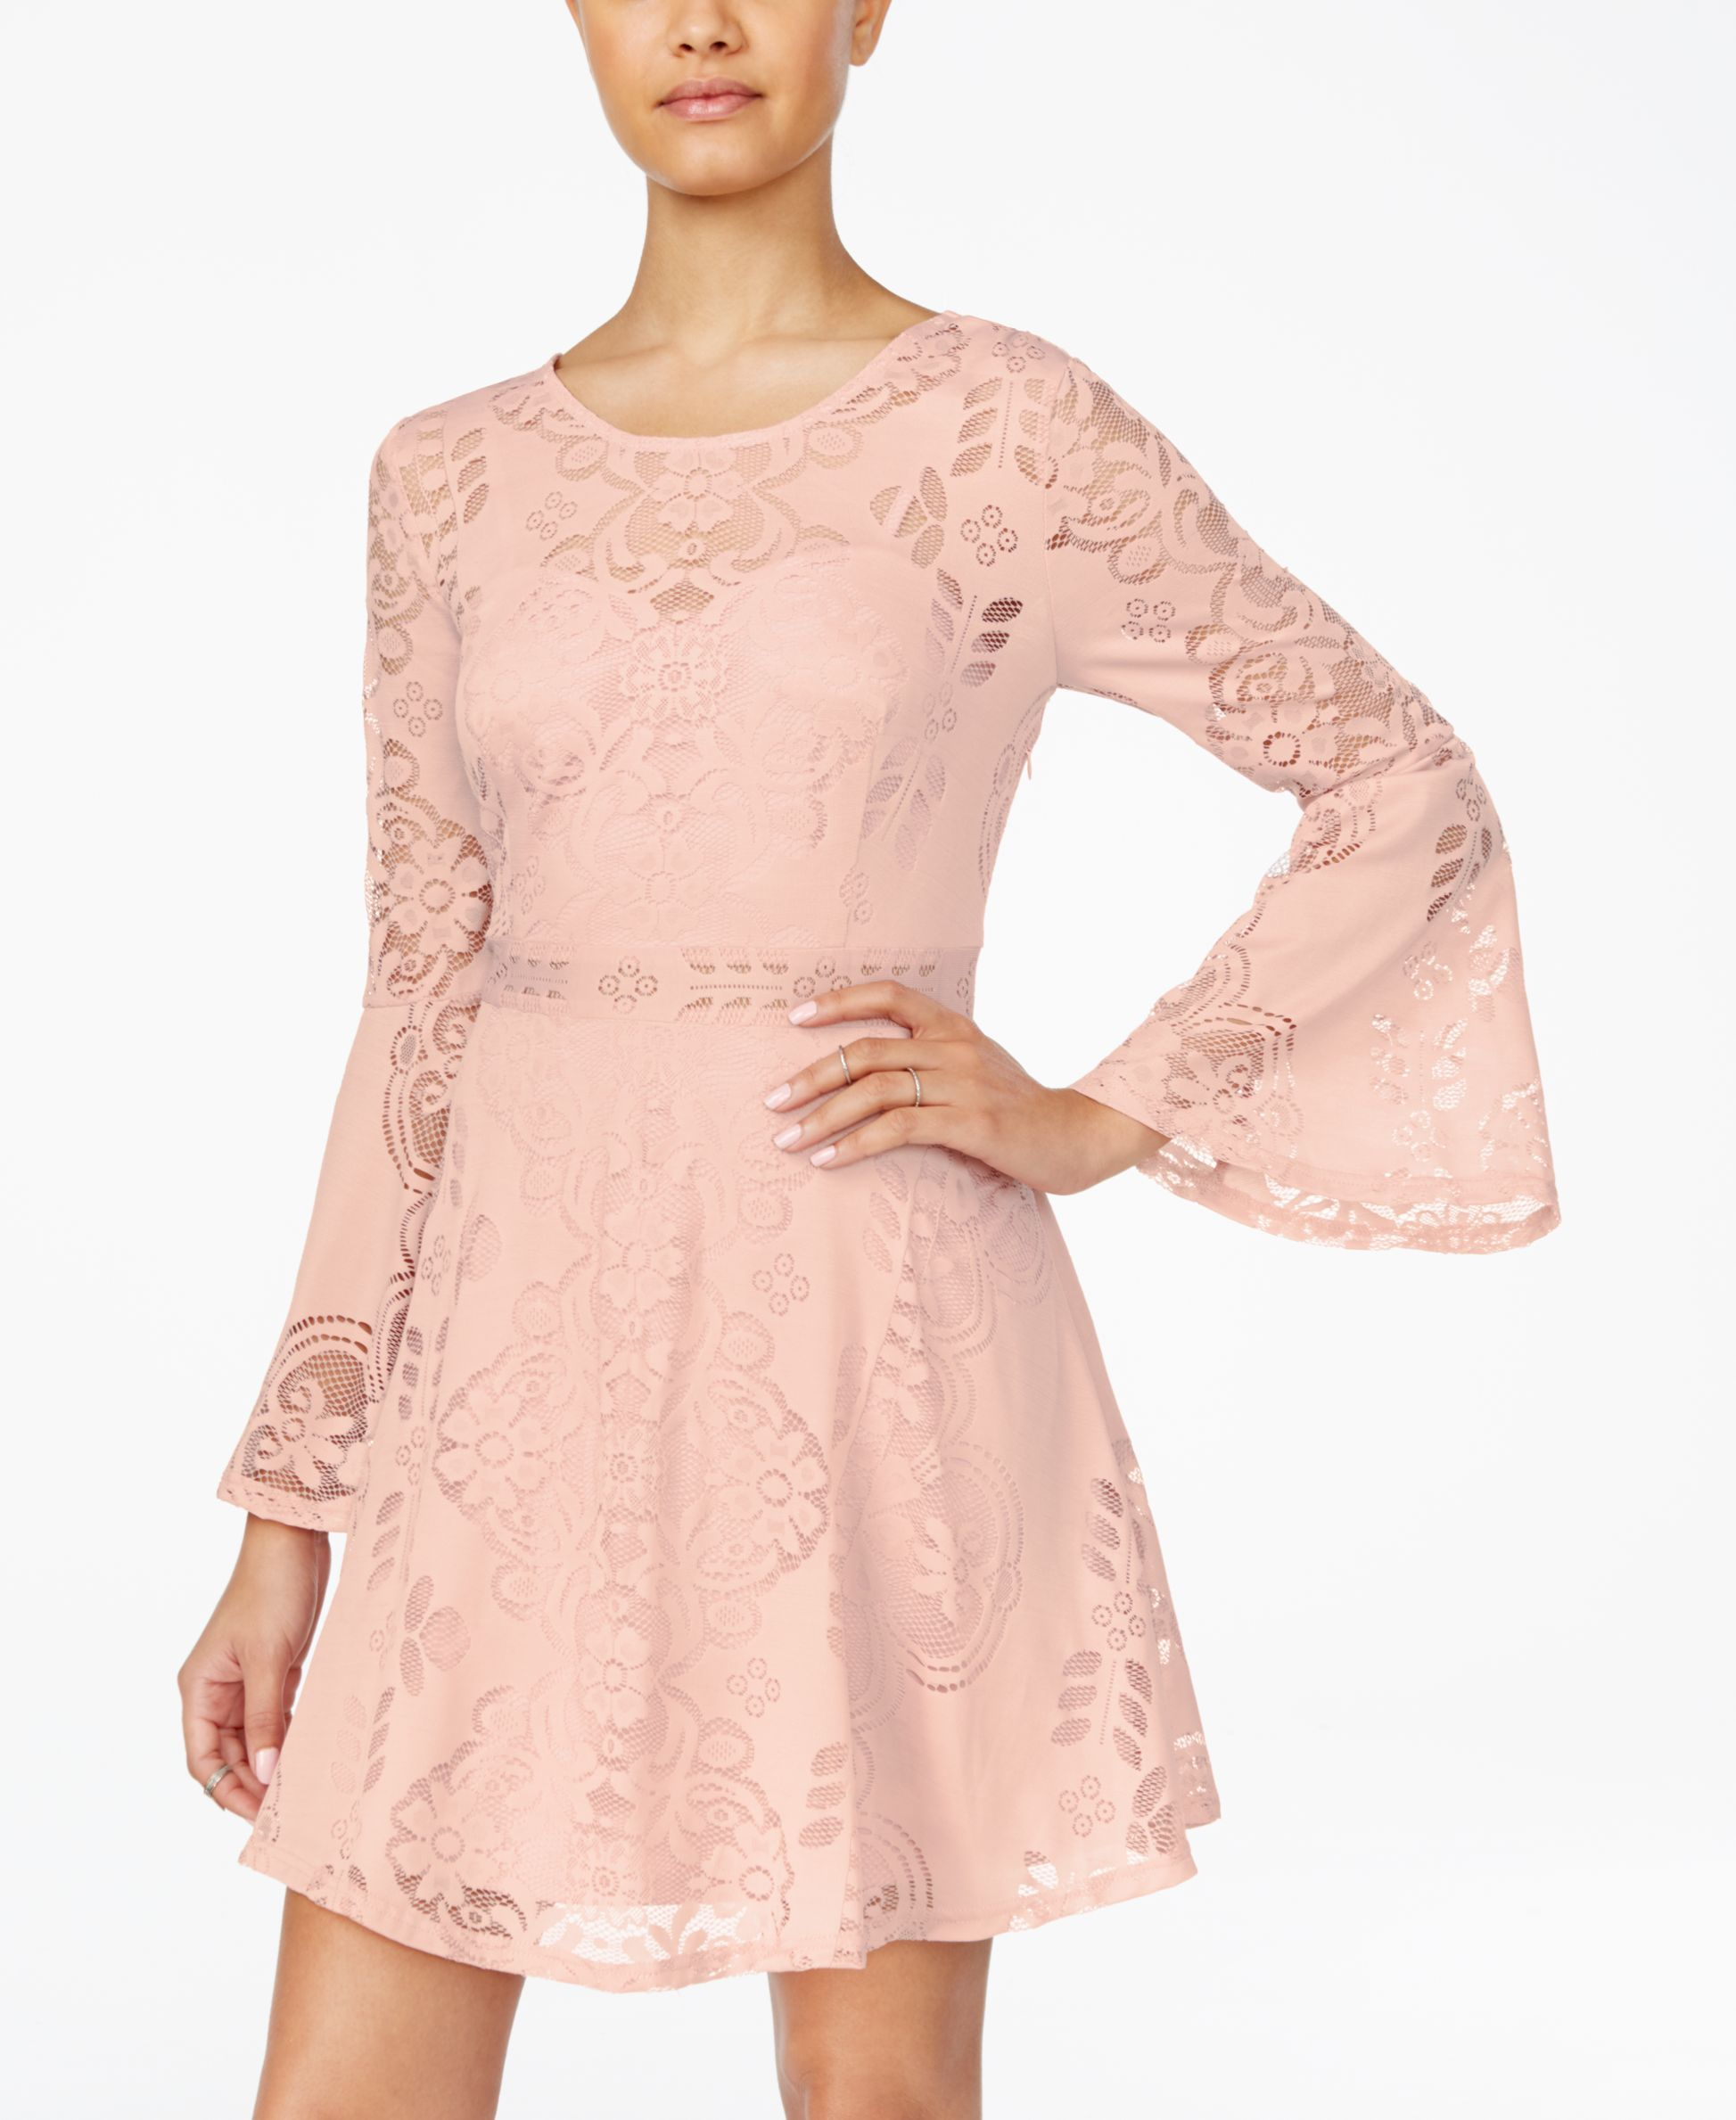 635739b78061 American Rag Juniors' Bell-Sleeve Burnout Lace Dress, Only at Macy's ...